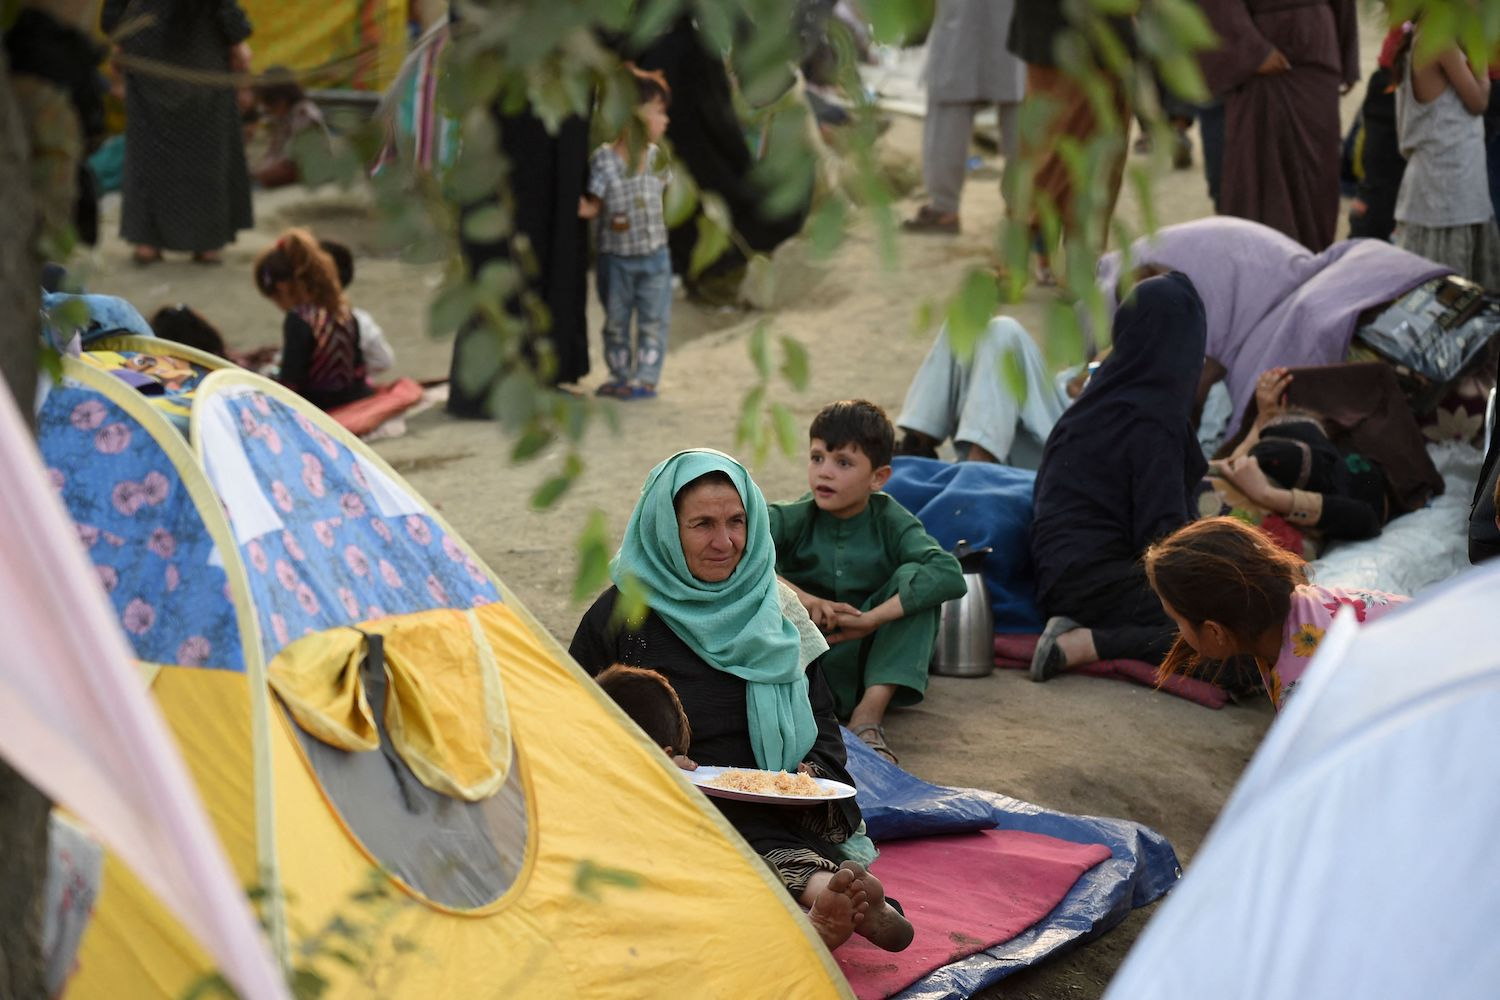 Internally displaced Afghan families who fled from Kunduz, Takhar, and Baghlan provinces sit near tents at Sara-e-Shamali in Kabul on Aug. 11.